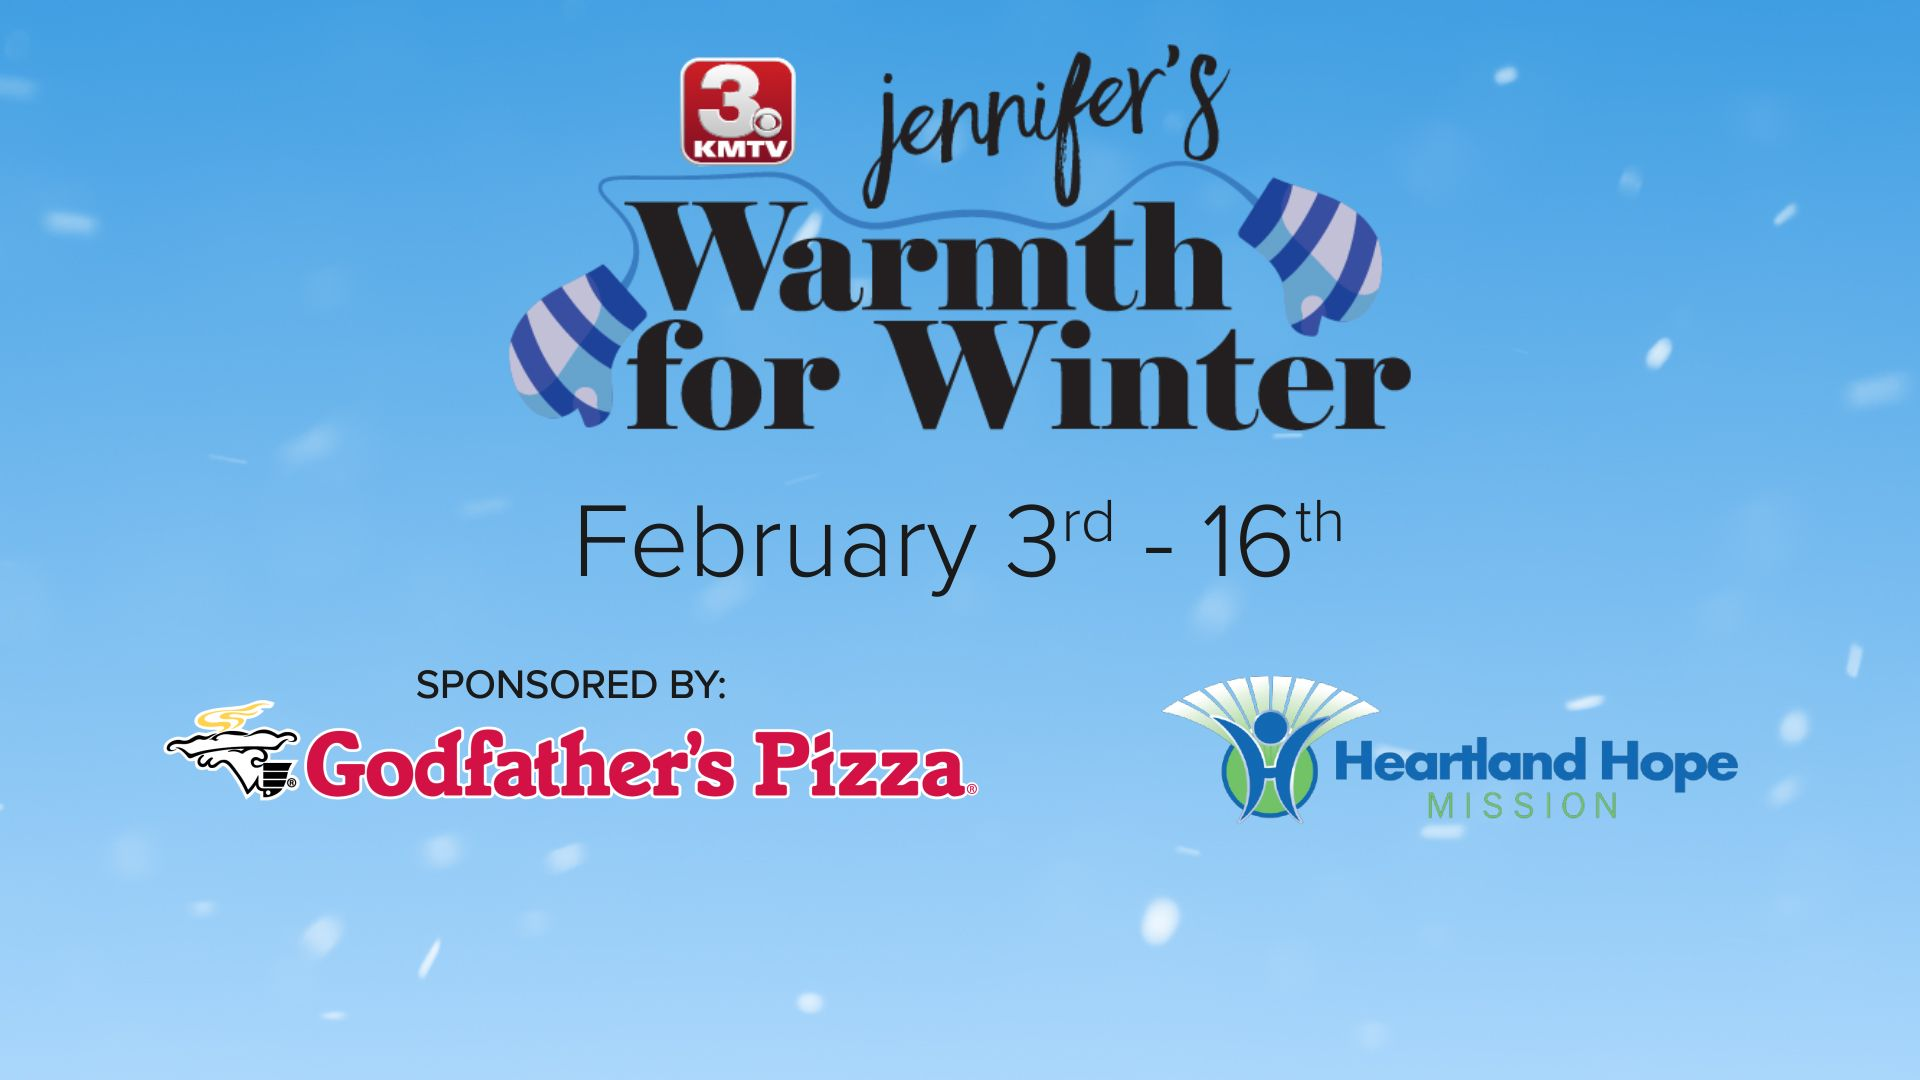 Jennifer's Warmth for Winter